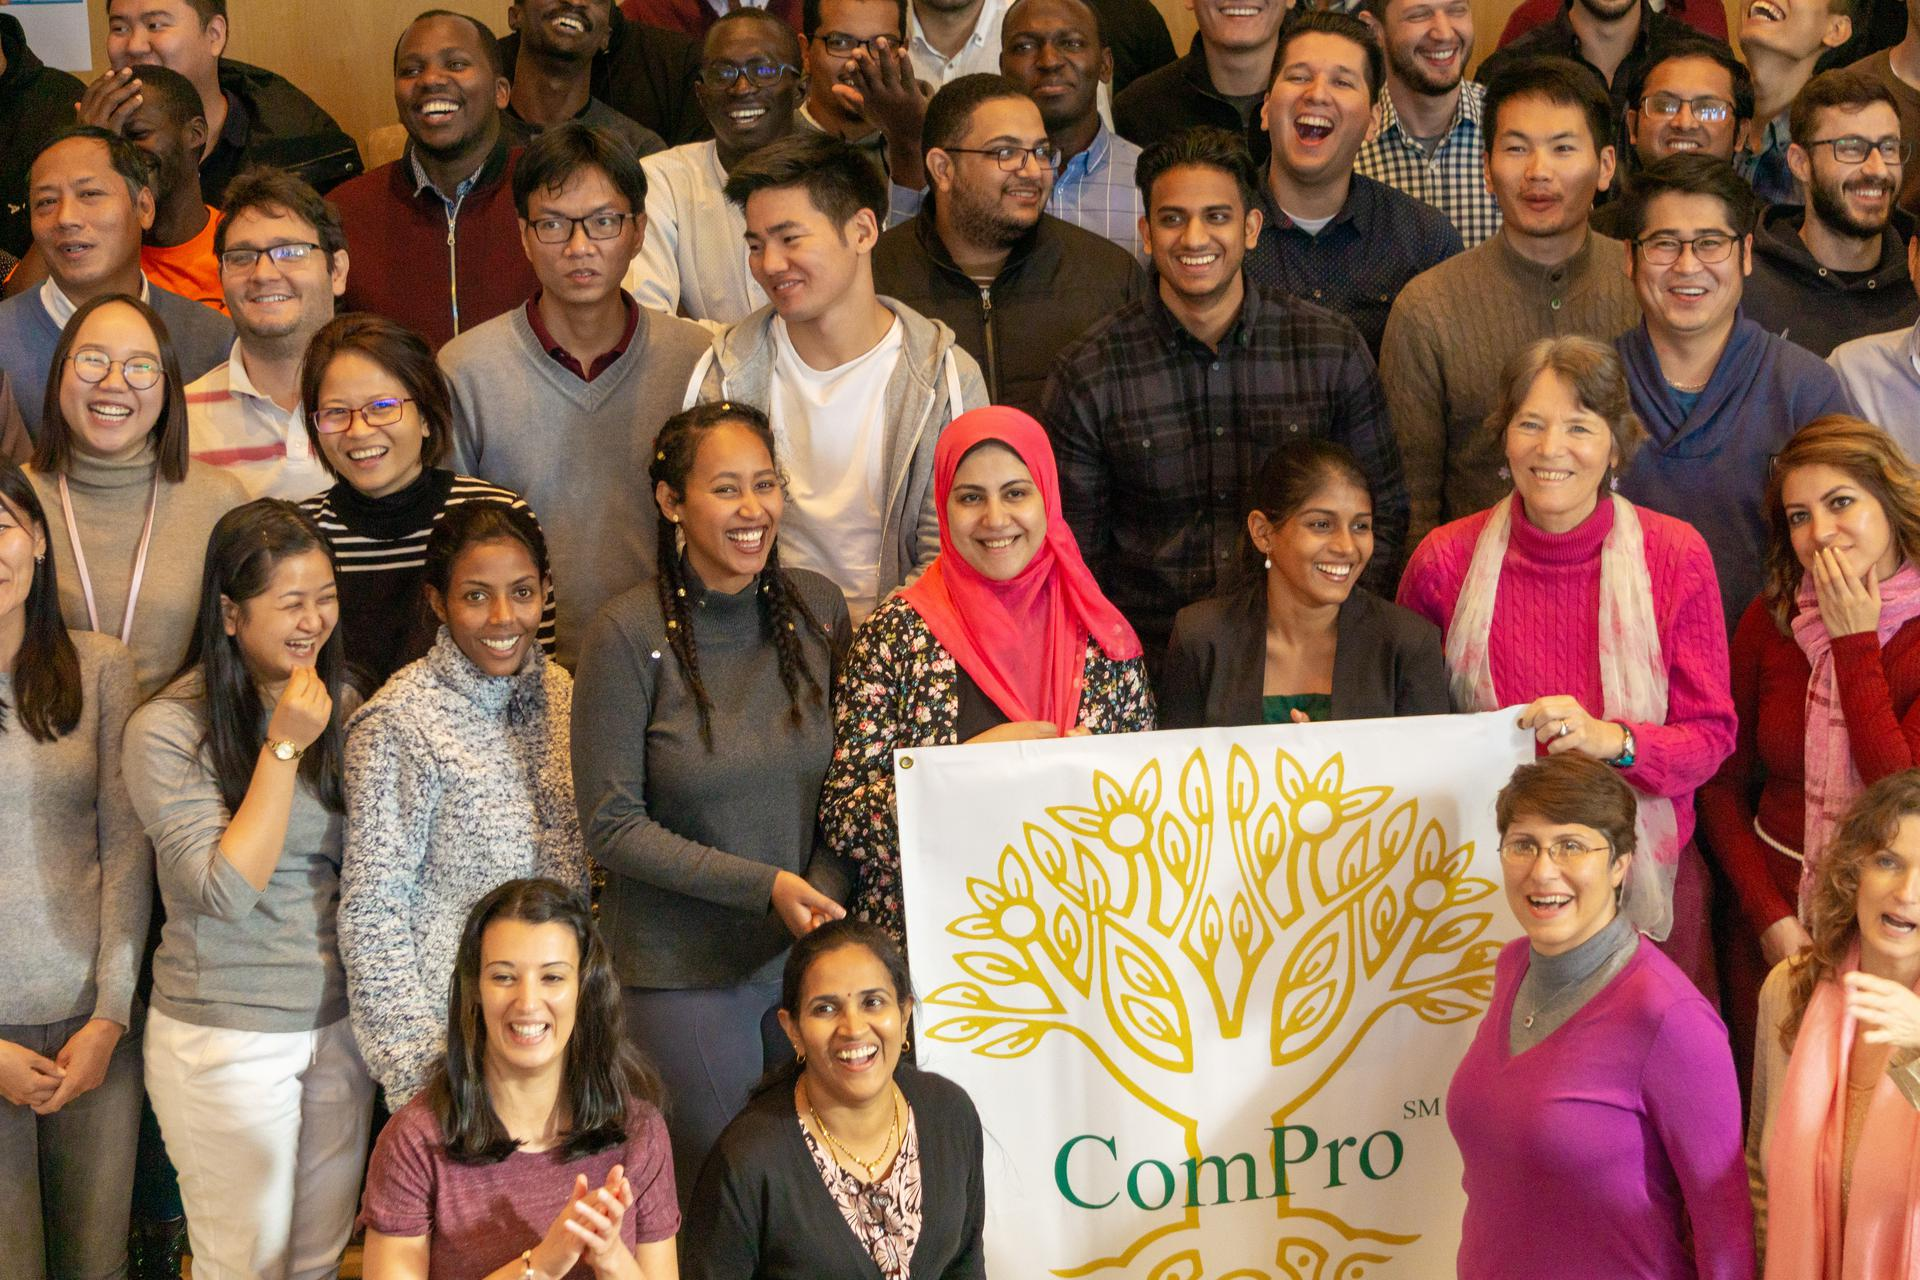 ComPro students come from all over the world!